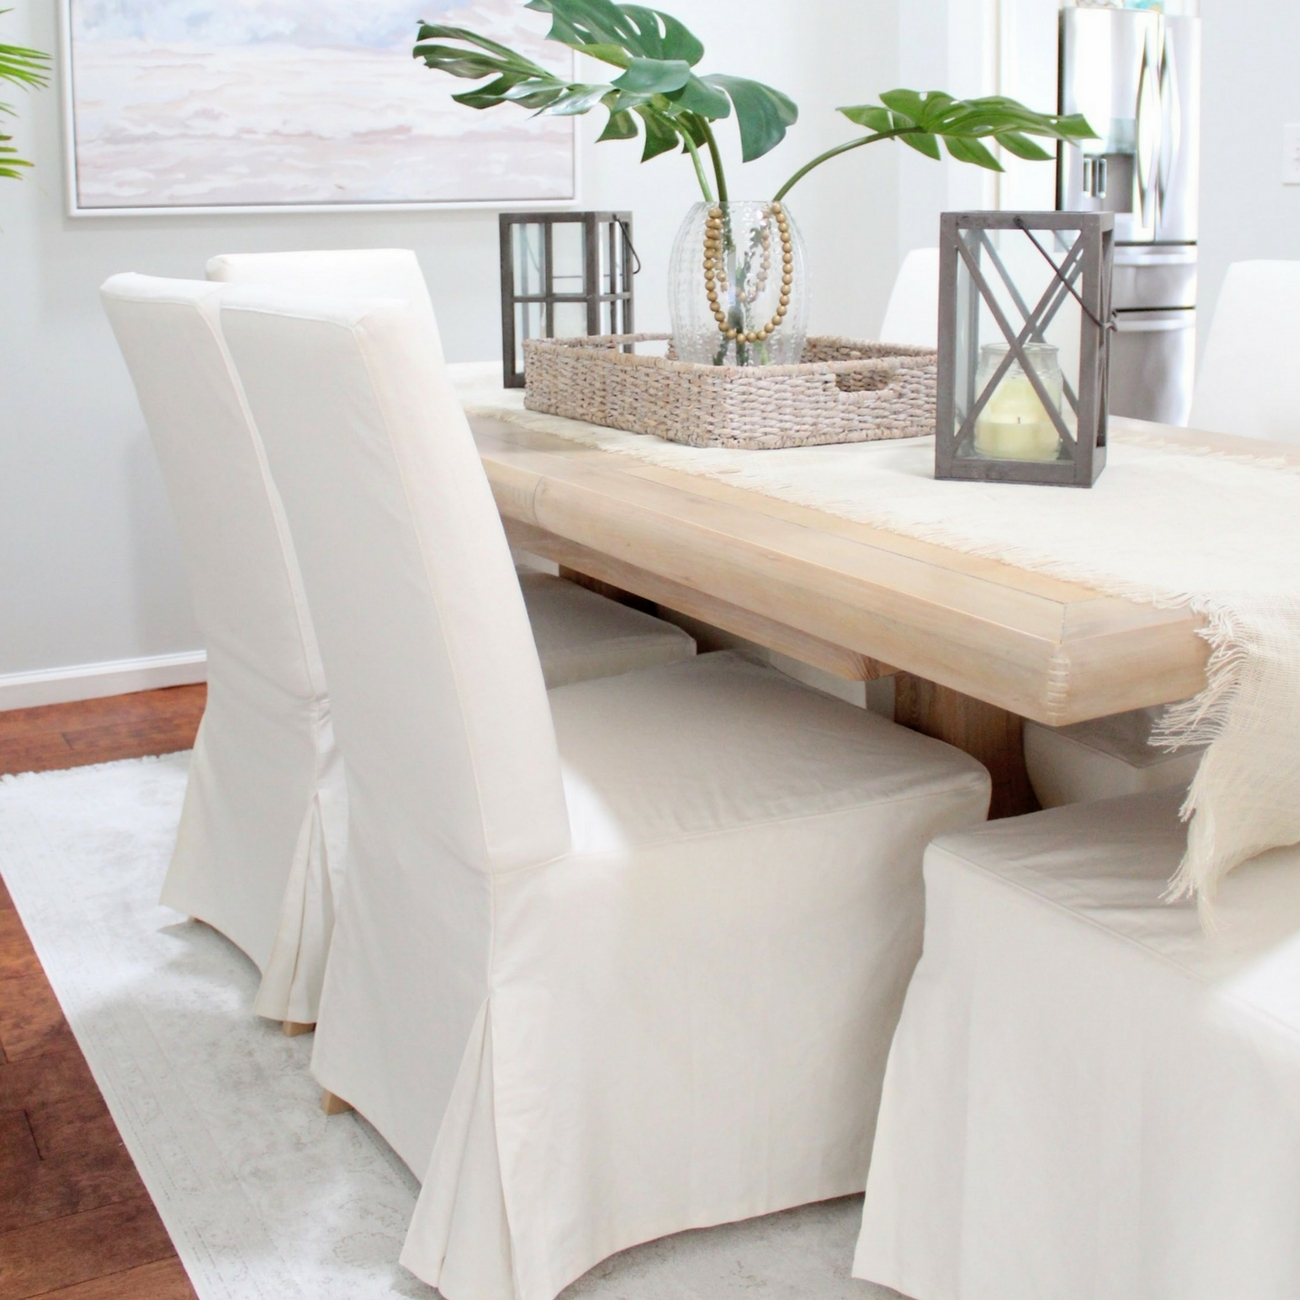 Why I Love My White Slipcovered Dining Chairs